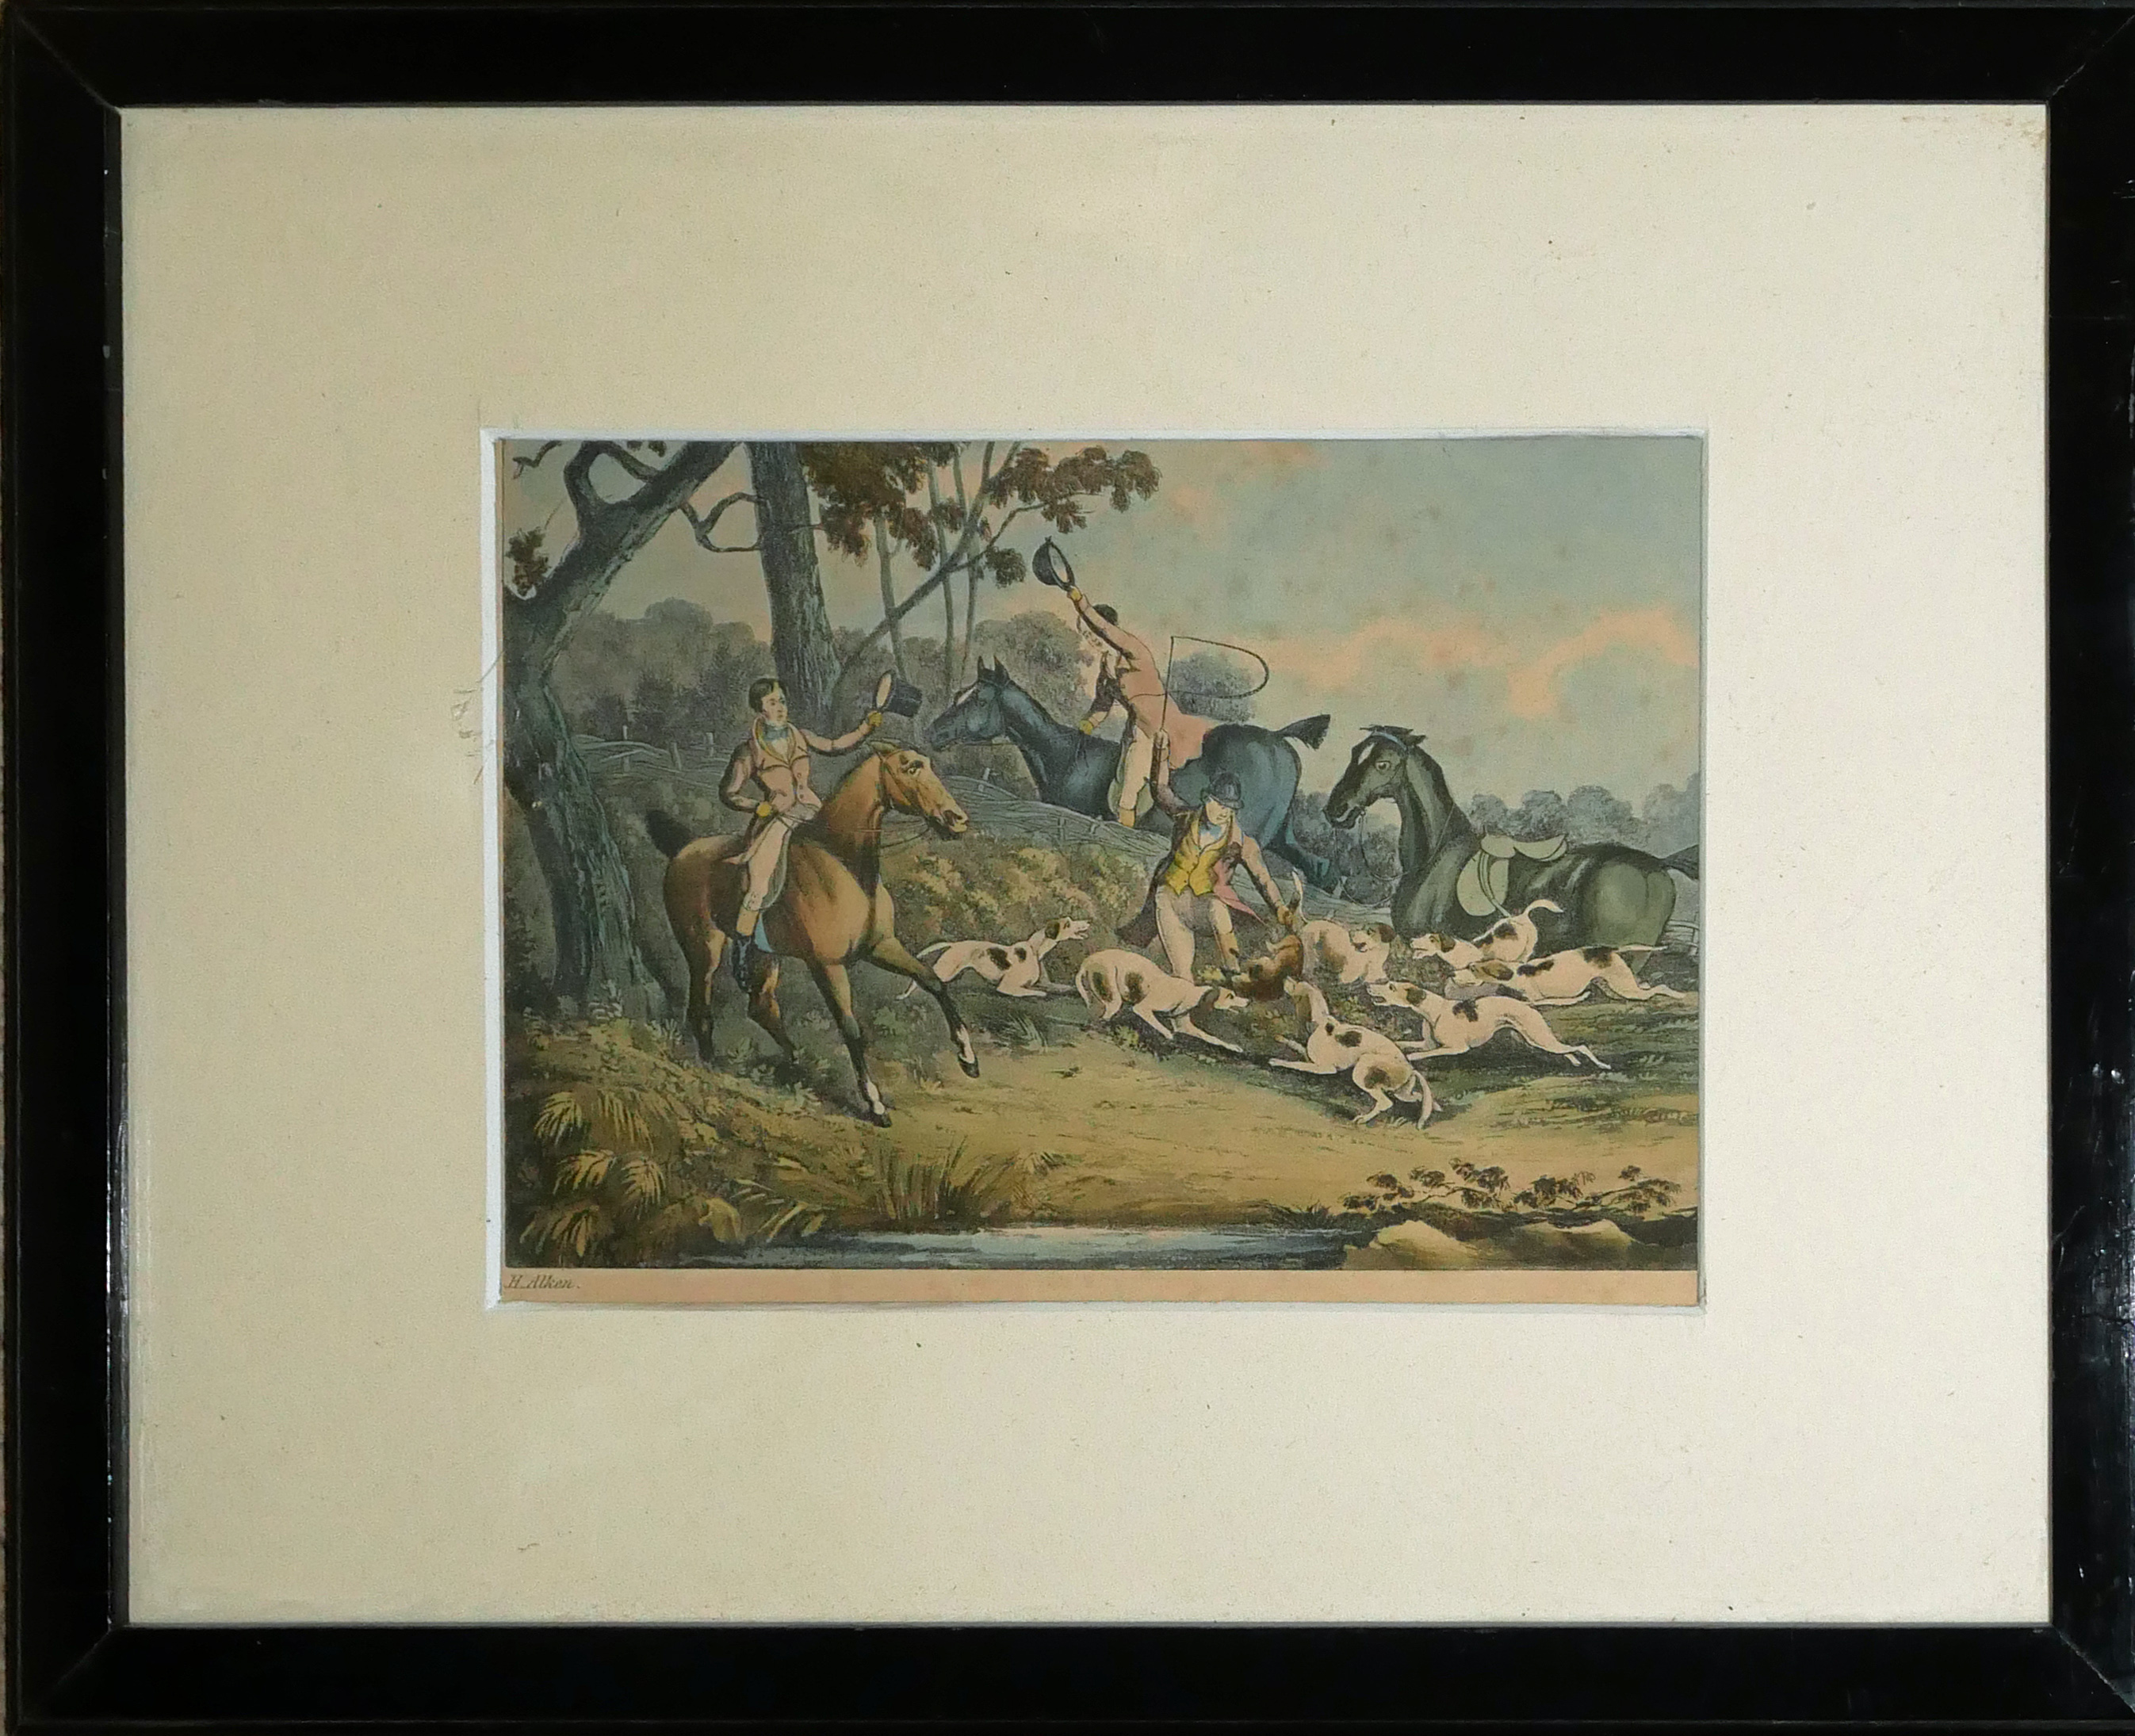 A COLLECTION OF SPORTING COLOURED ENGRAVINGS To include a scene Ben Marshall - notions series, - Image 7 of 7